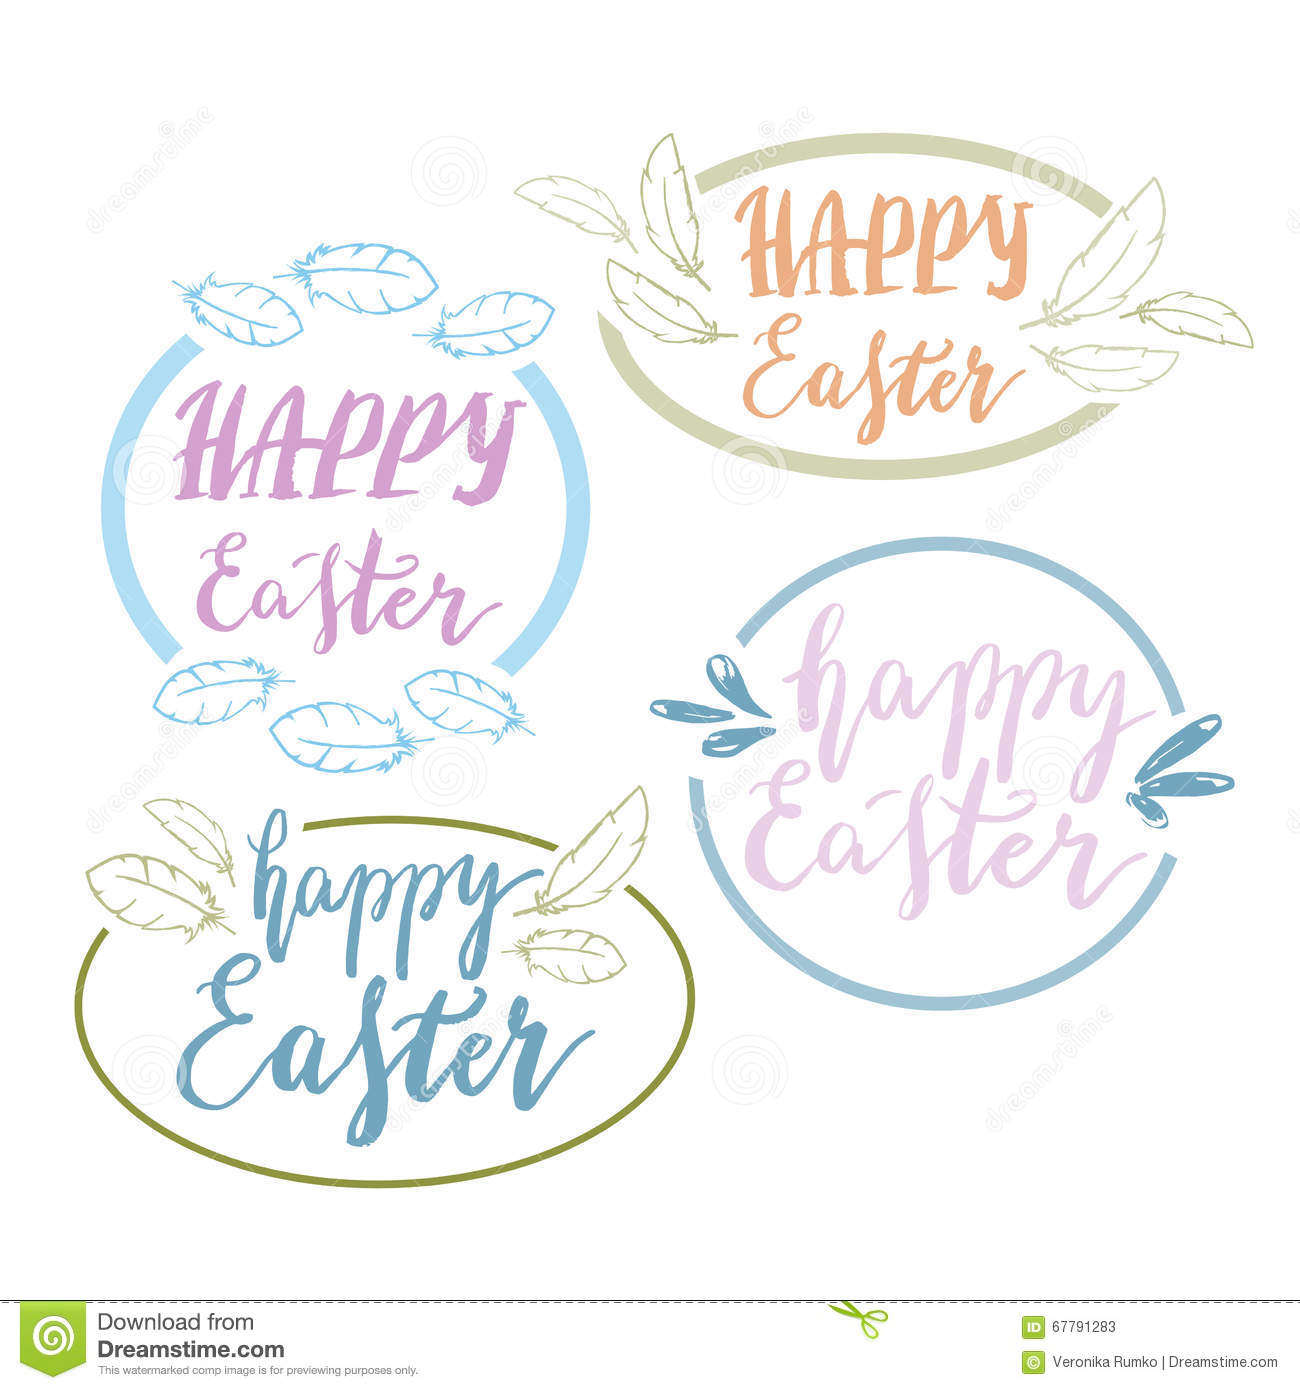 Hand written happy easter phrases eeting card text templates with download hand written happy easter phrases eeting card text templates with design elements stock vector m4hsunfo